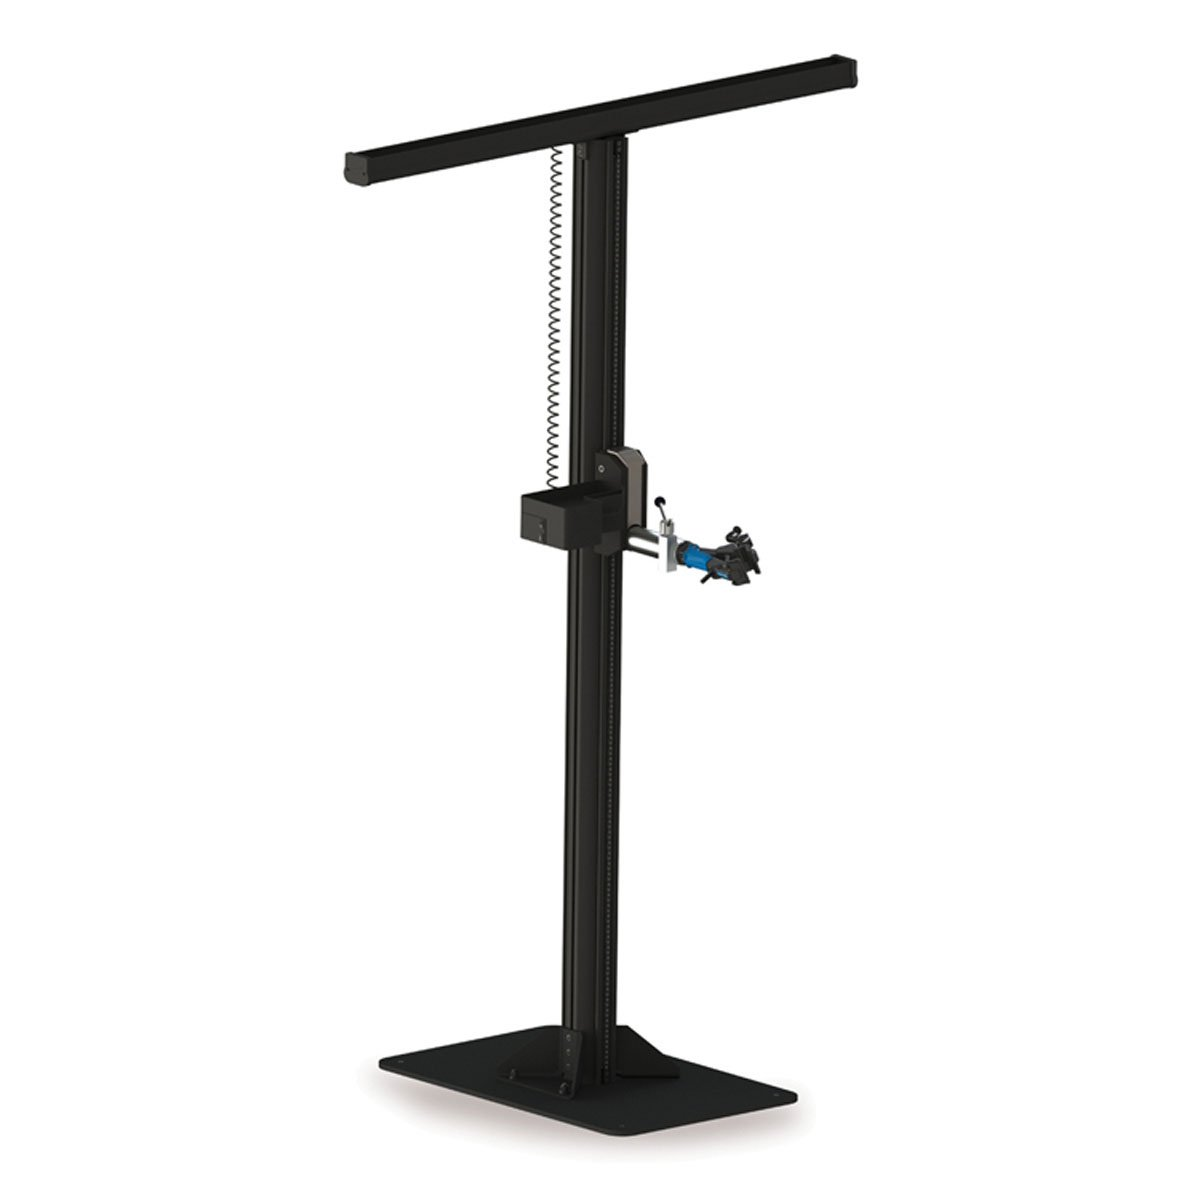 Park prs-33 PWR Lift Shp supporto Pro-Motion Distributing - Direct x